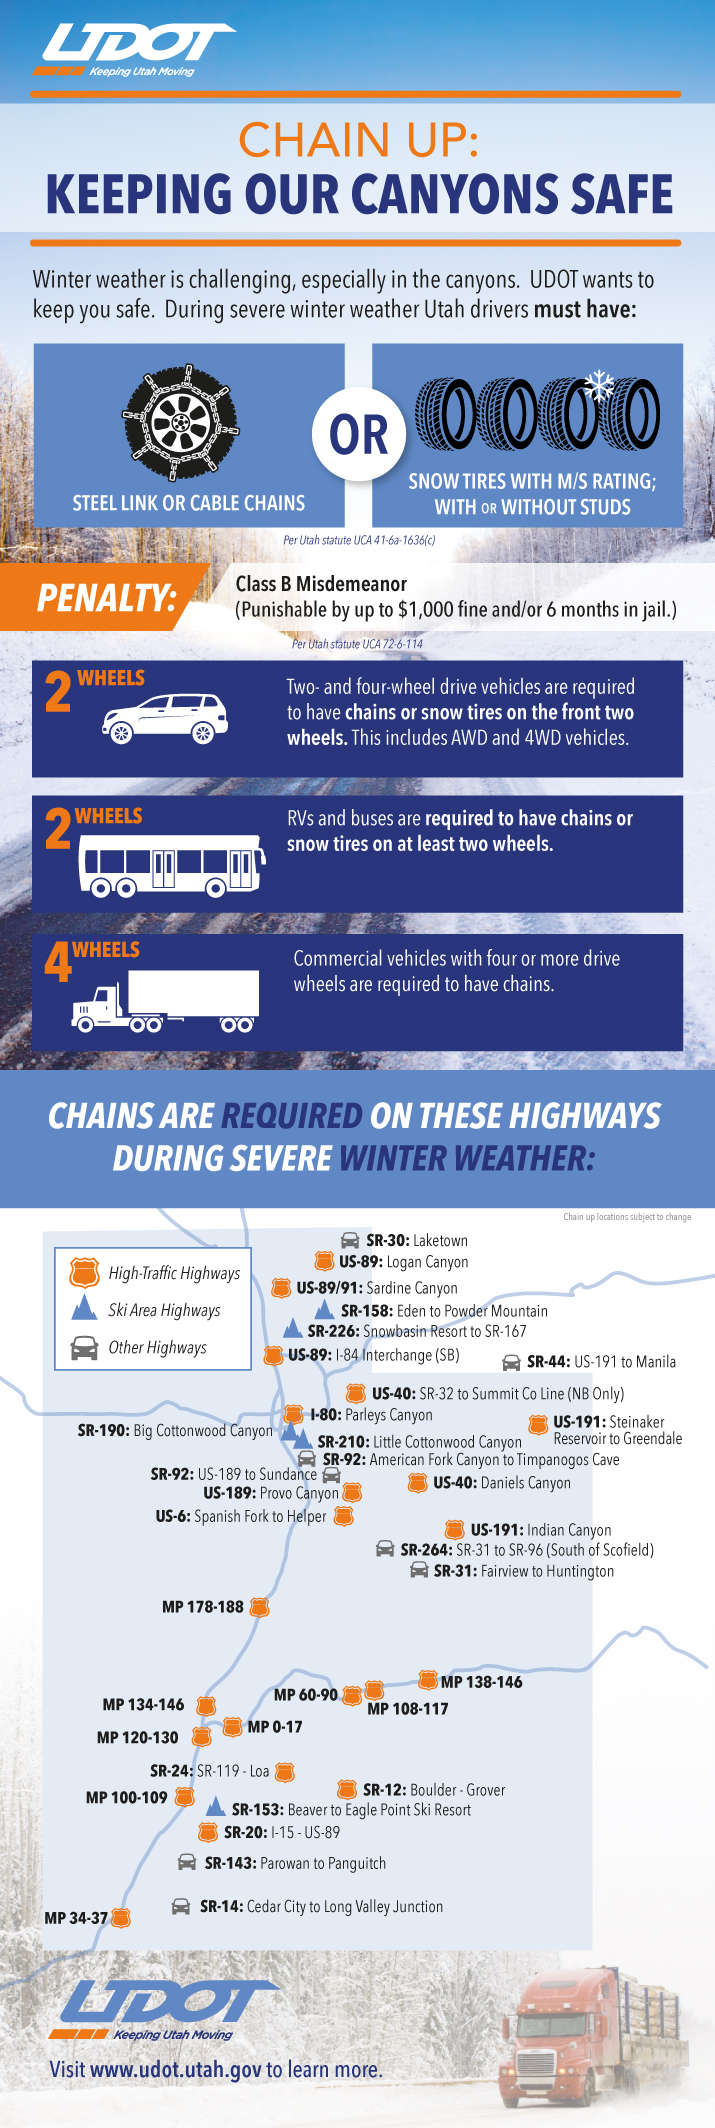 snow tire - chain - requirements - UDOT infographic